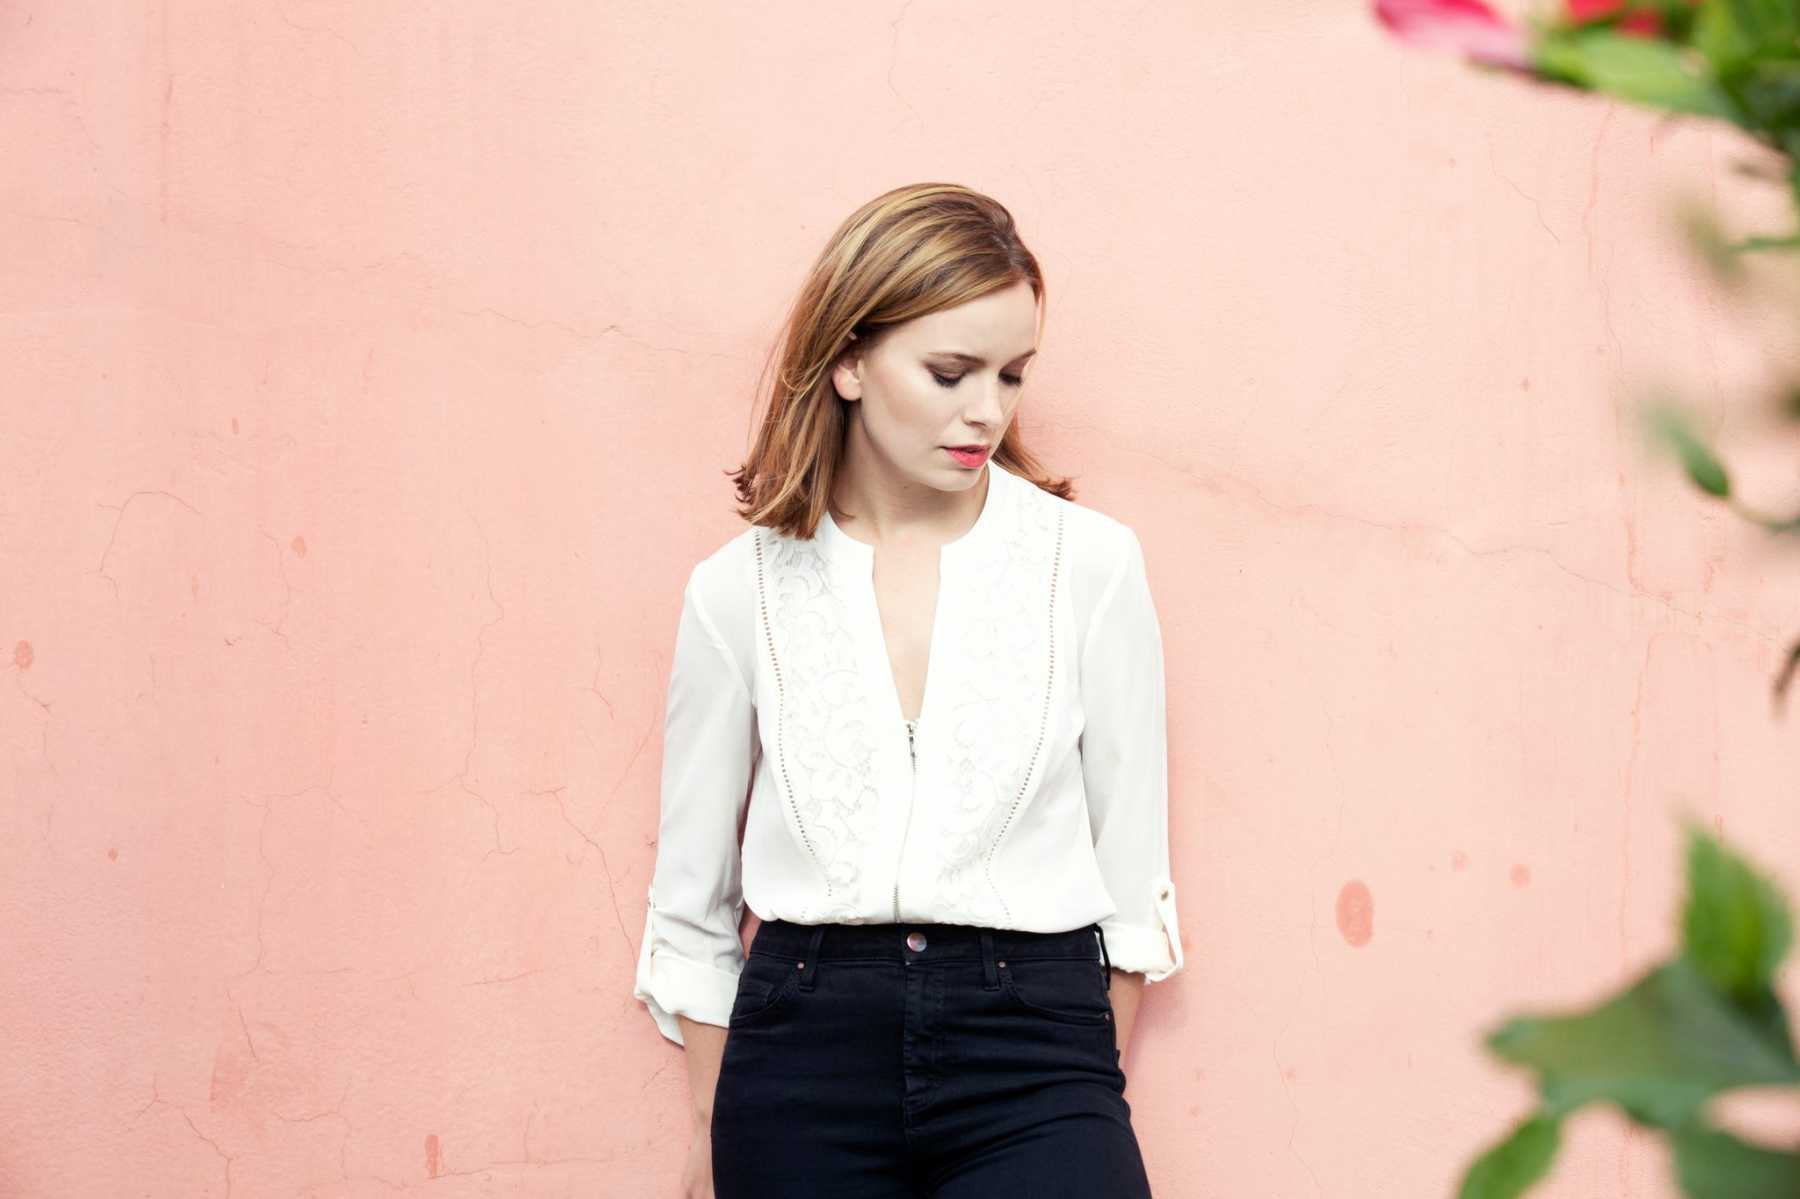 Exclusive: Marit Larsen Discusses 'When The Morning Comes' And Plans For 2016 | Marit Larsen